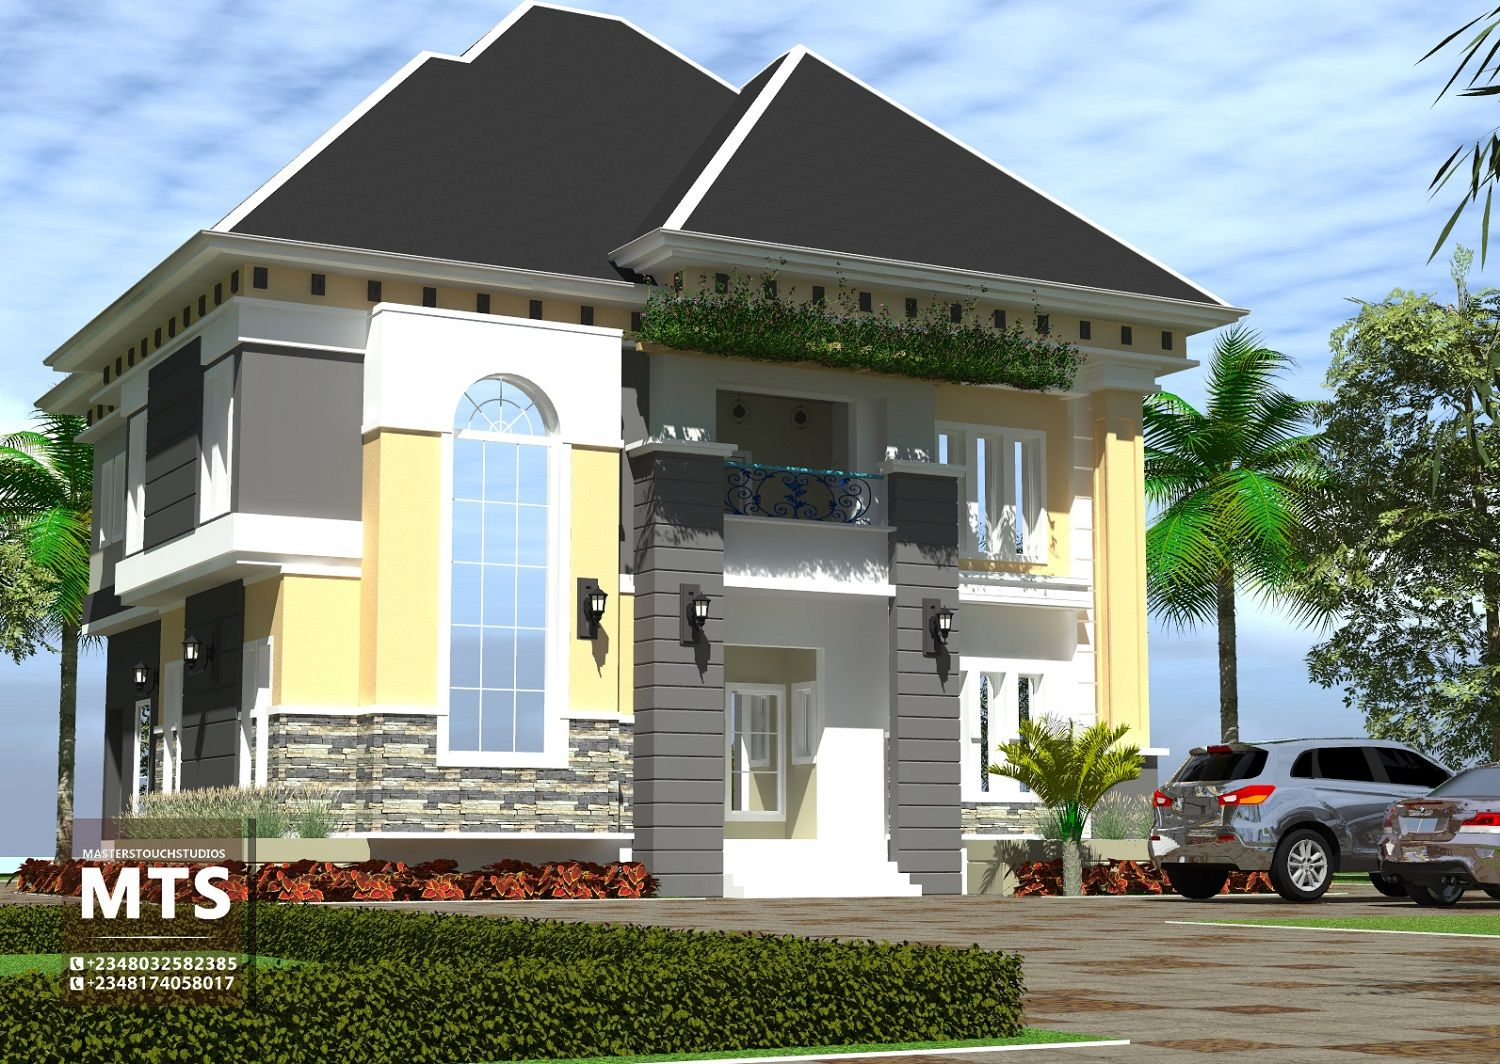 3 Bedroom Duplex Rf D3001 House Styles Duplex House Design Duplex Design